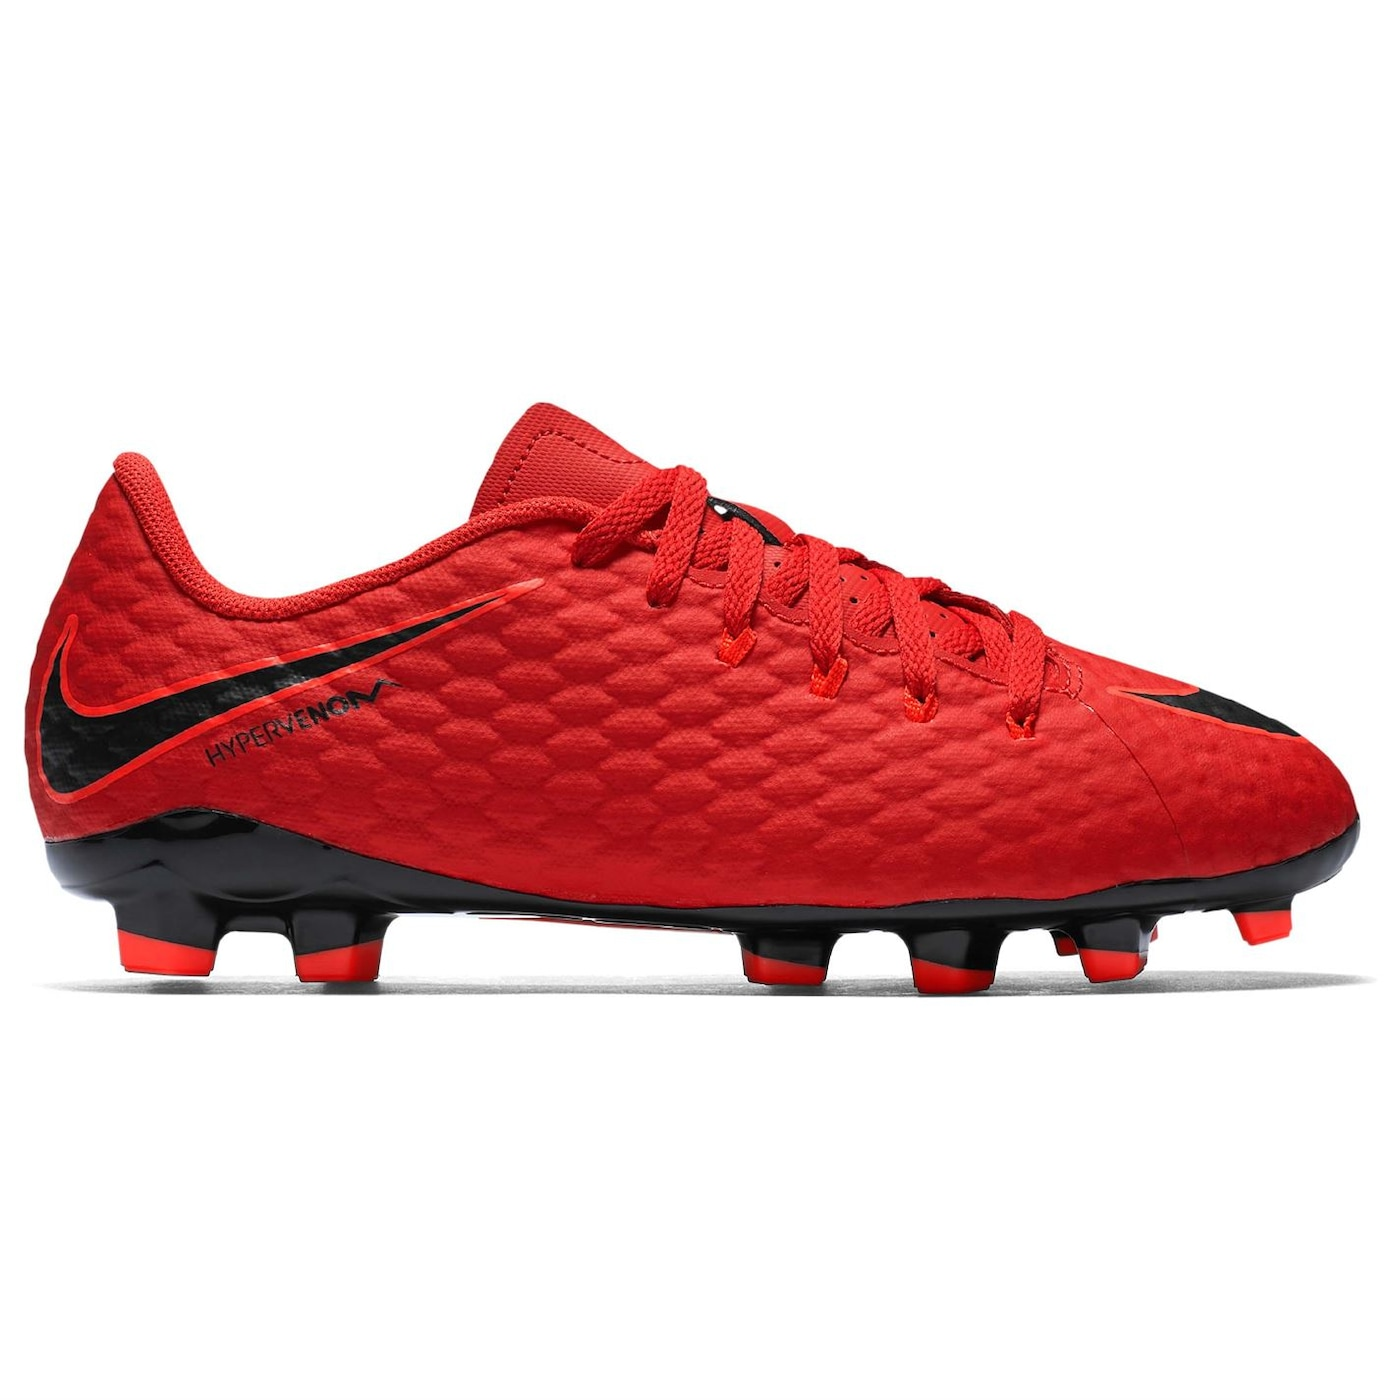 Nike Hypervenom Phelon Junior FG Football Boots